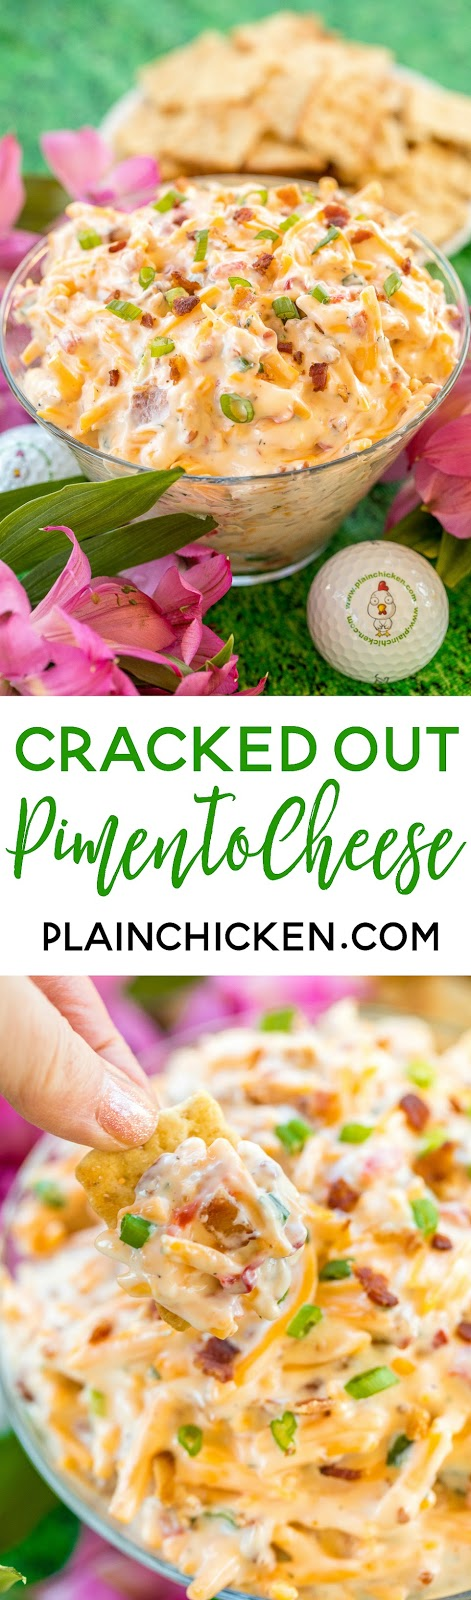 Cracked Out Pimento Cheese - pimento cheese loaded with cheddar, bacon and ranch! Dangerously delicious!! Great as a dip or on a sandwich. Cheddar cheese, pimentos, mayonnaise, ranch dressing mix, bacon, green onions. So simple and it tastes AMAZING! Perfect for watching The Masters golf tournament! #crack #pimentocheese #cheese #themasters #dip